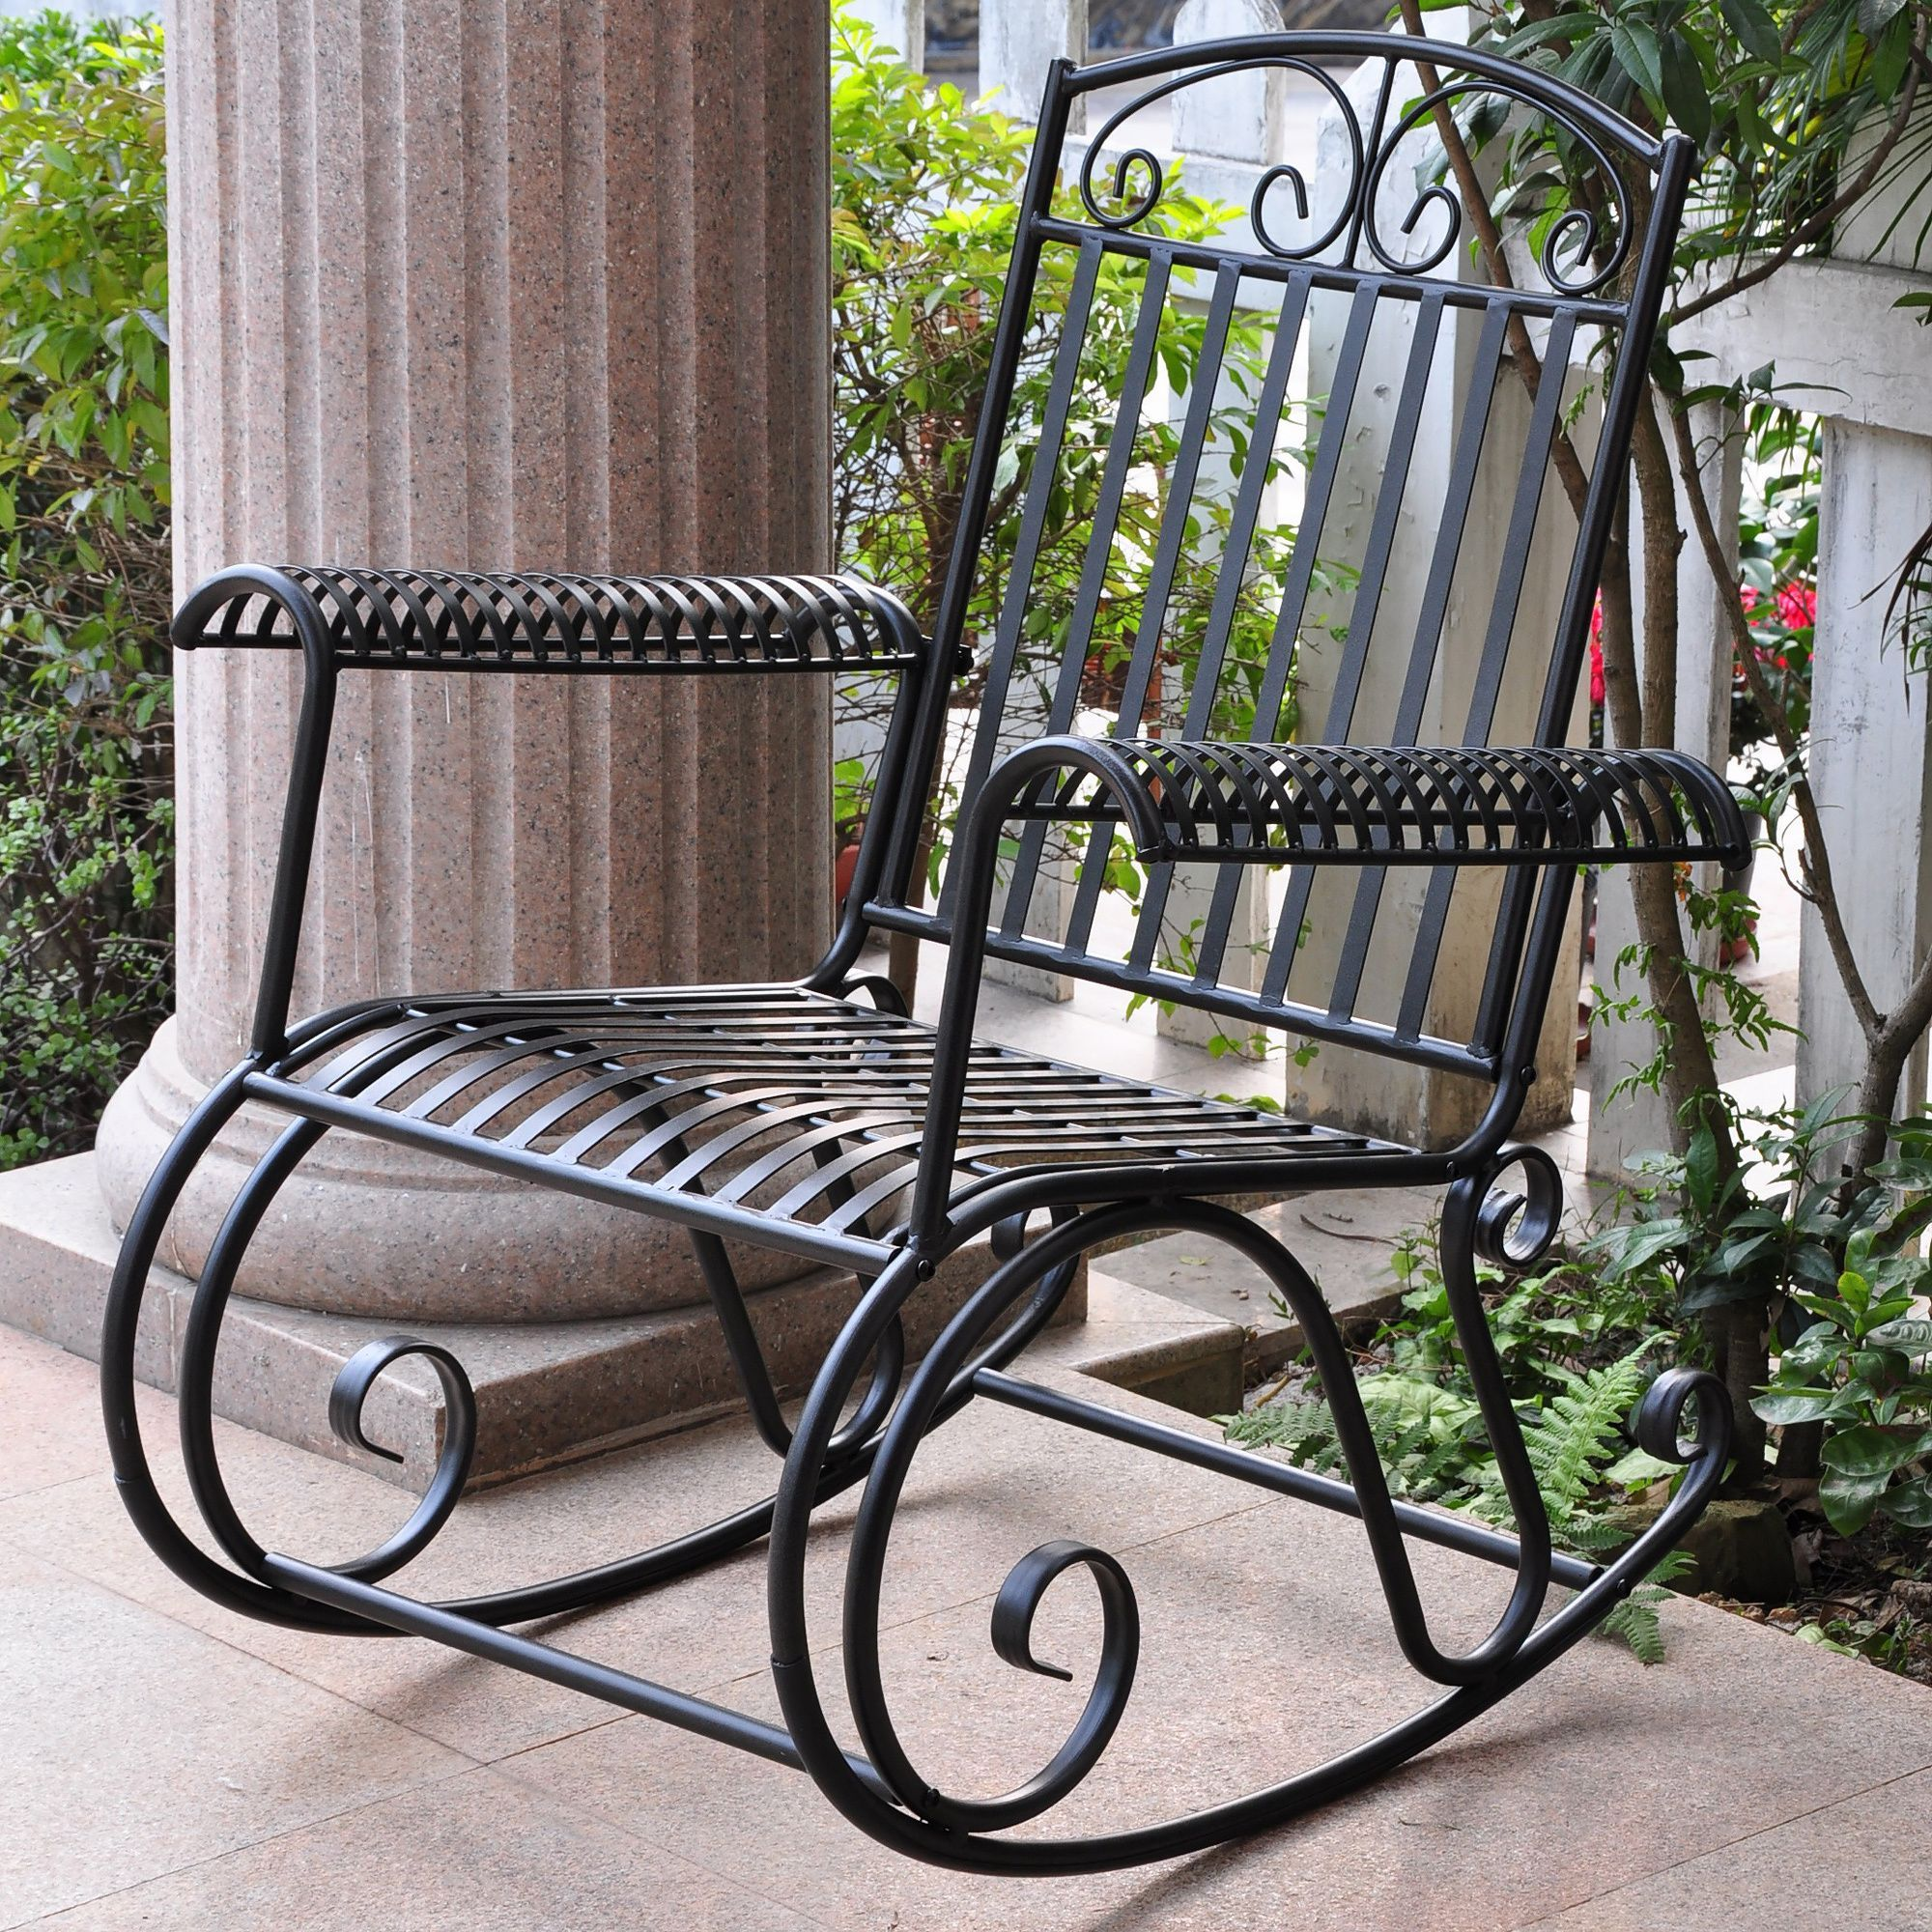 Rocking Chair Is Constructed Of Durable Iron Patio Furniture Features  Weather Resistant Double Powdercoated Black Finish Outdoor Chair Glides  With A Smooth ...